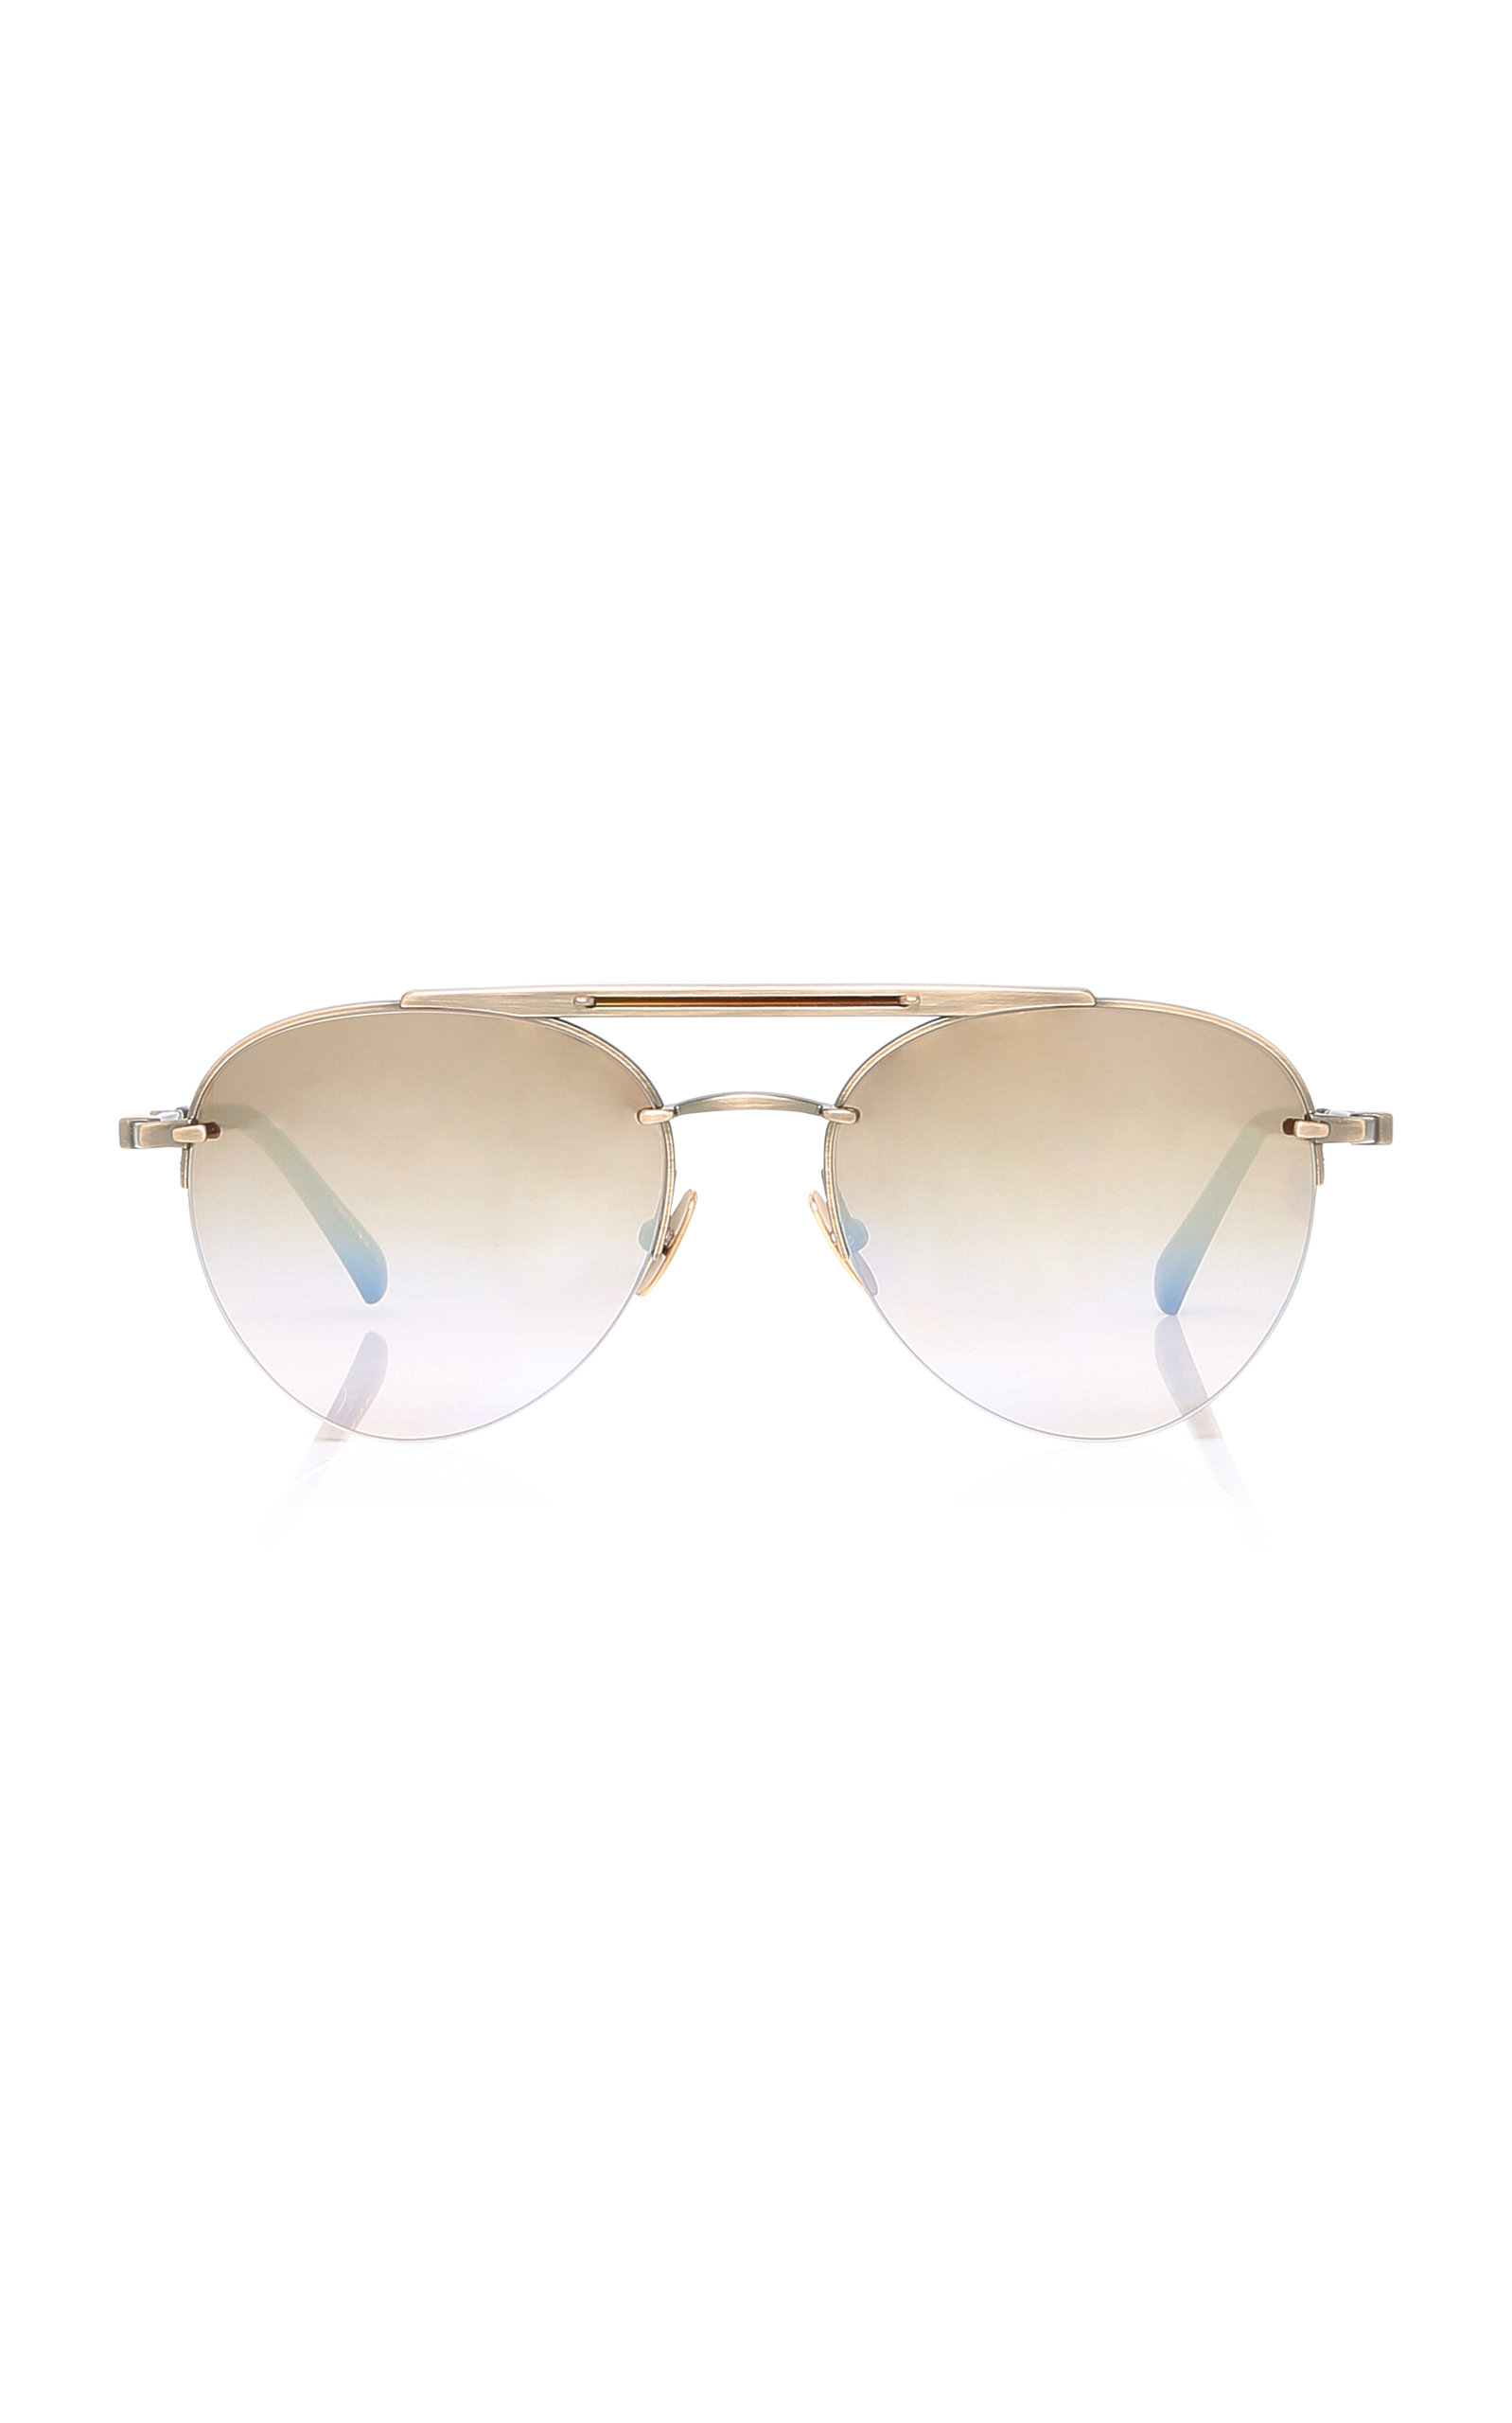 MR. LEIGHT Rodeo Gold-Plated Aviator Sunglasses in Brown